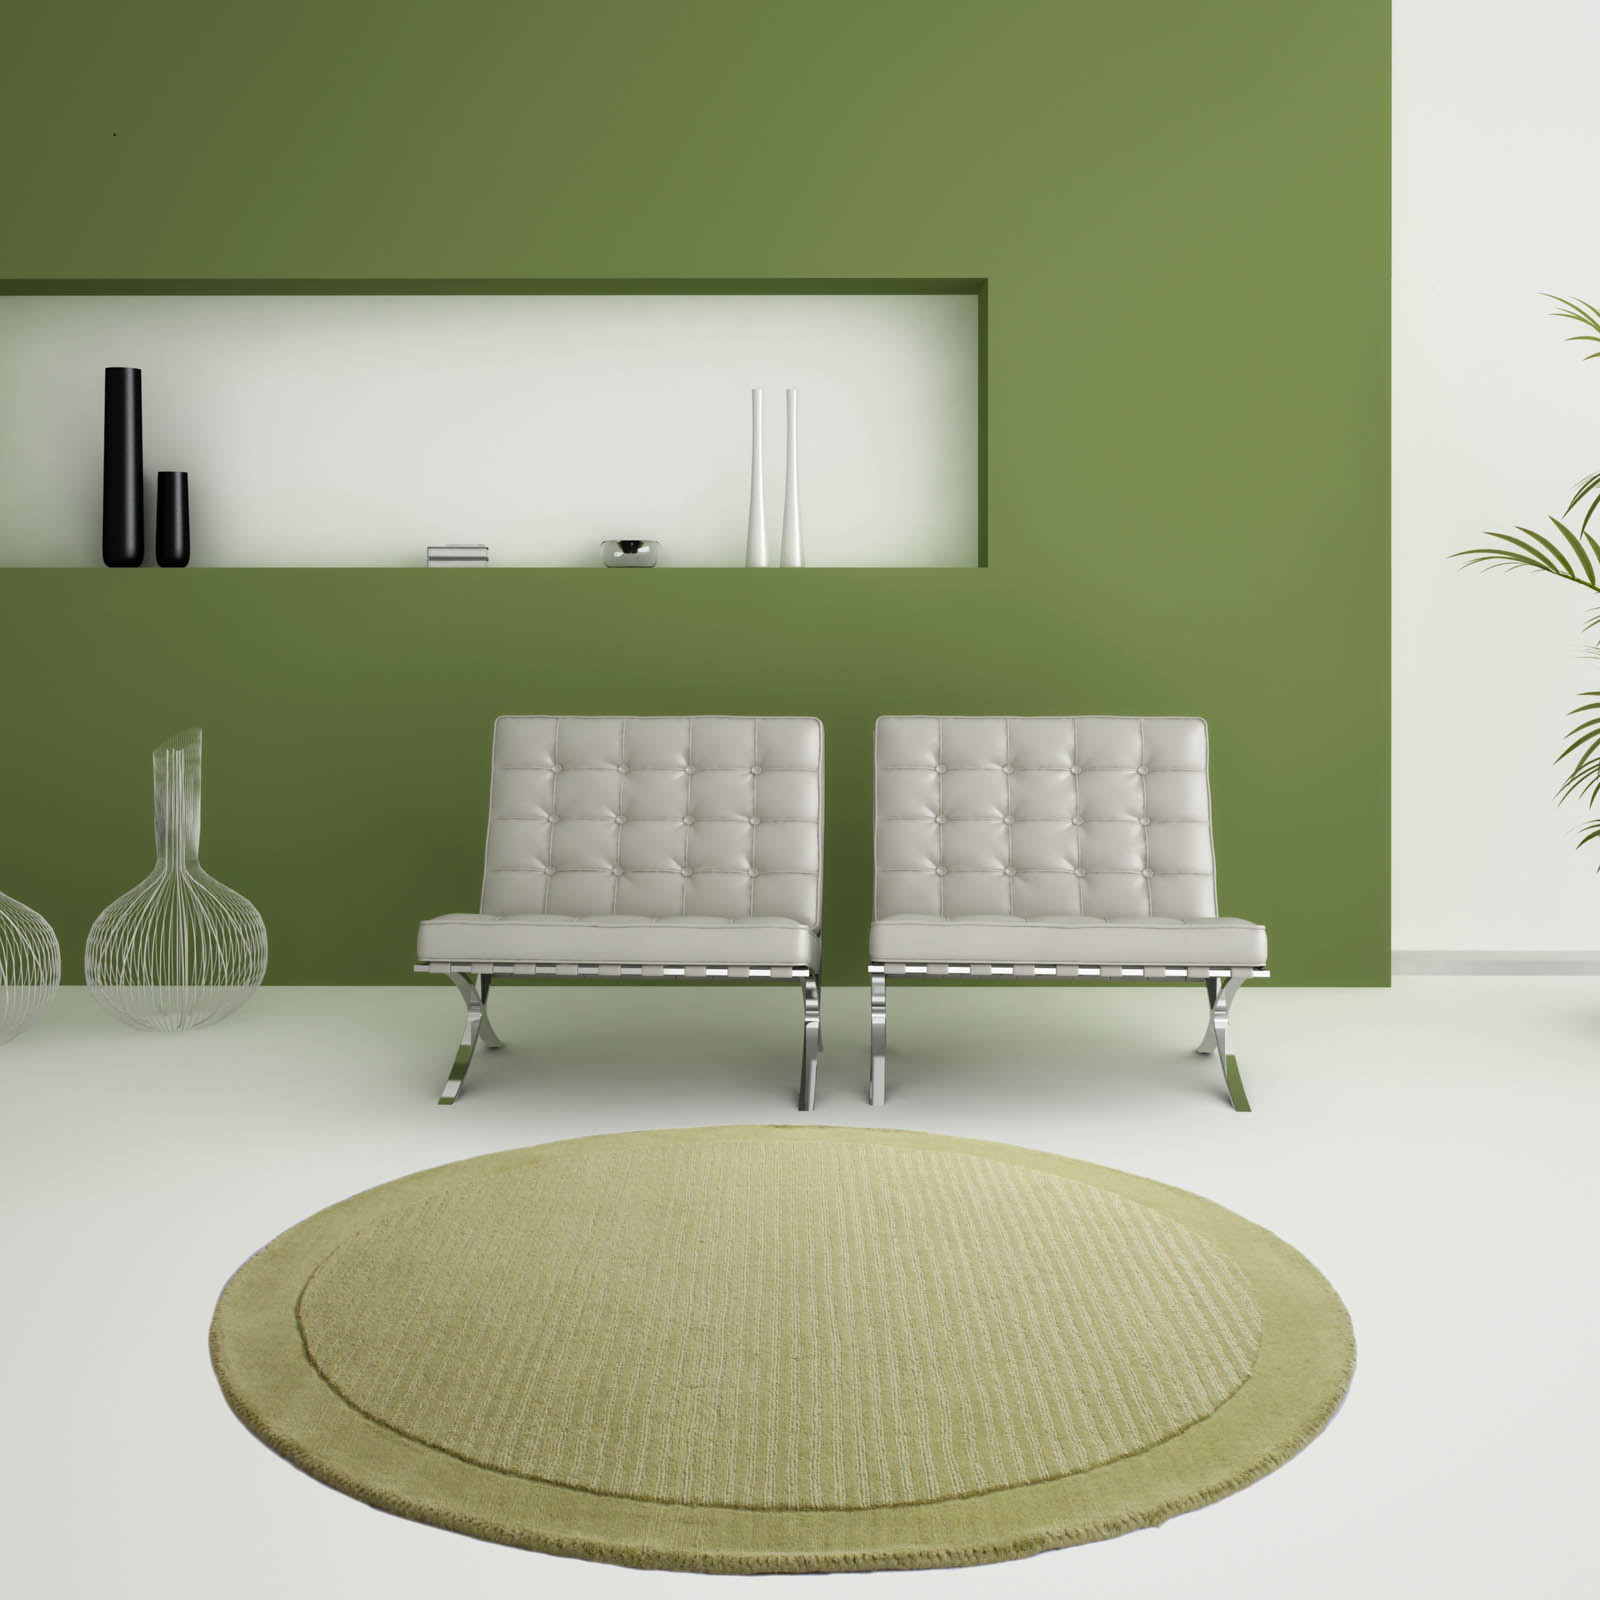 Sevilla Round Rugs in Lime